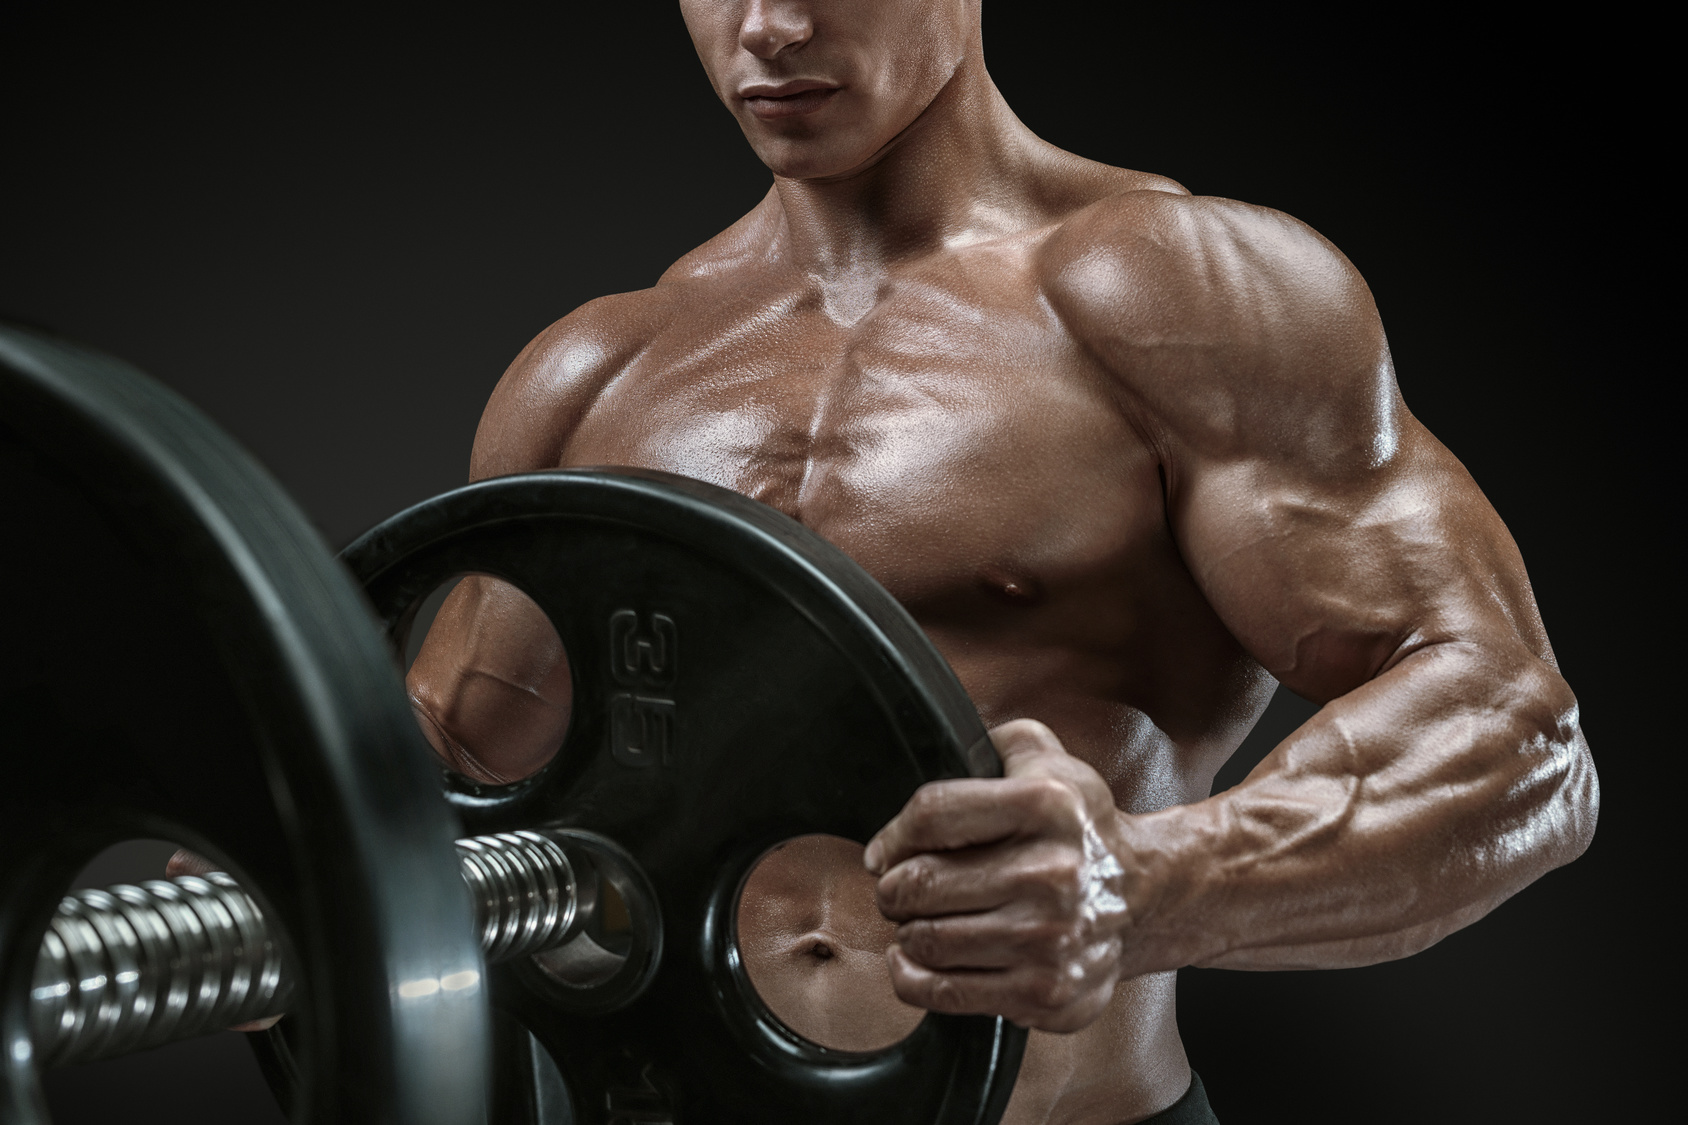 Best Post-Workout Supplements 2019 Edition – Speed Up Muscle Growth and Anabolism with These Top-Rated Stacks